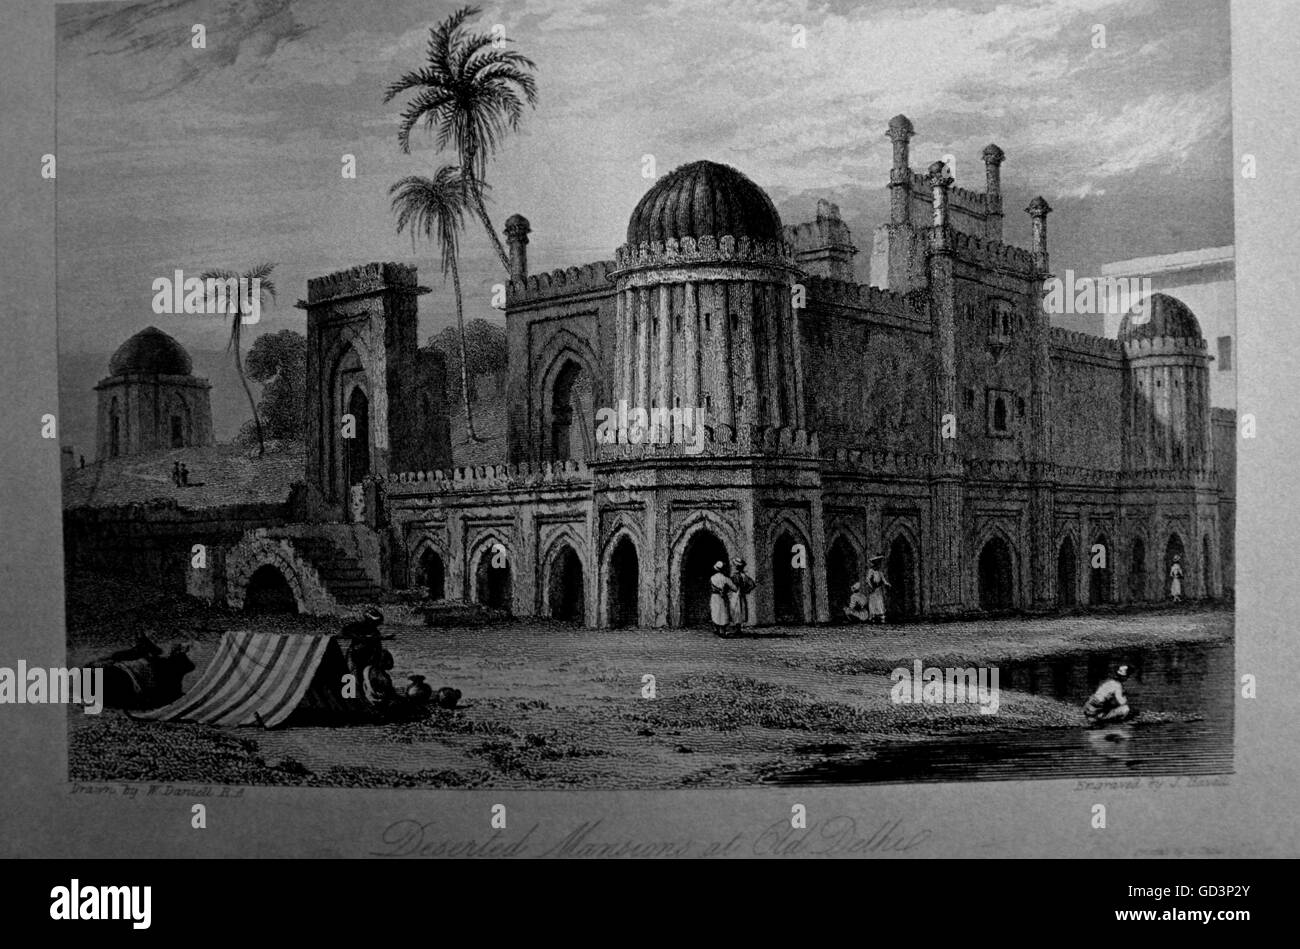 Lithograph of deserted mansions - Stock Image